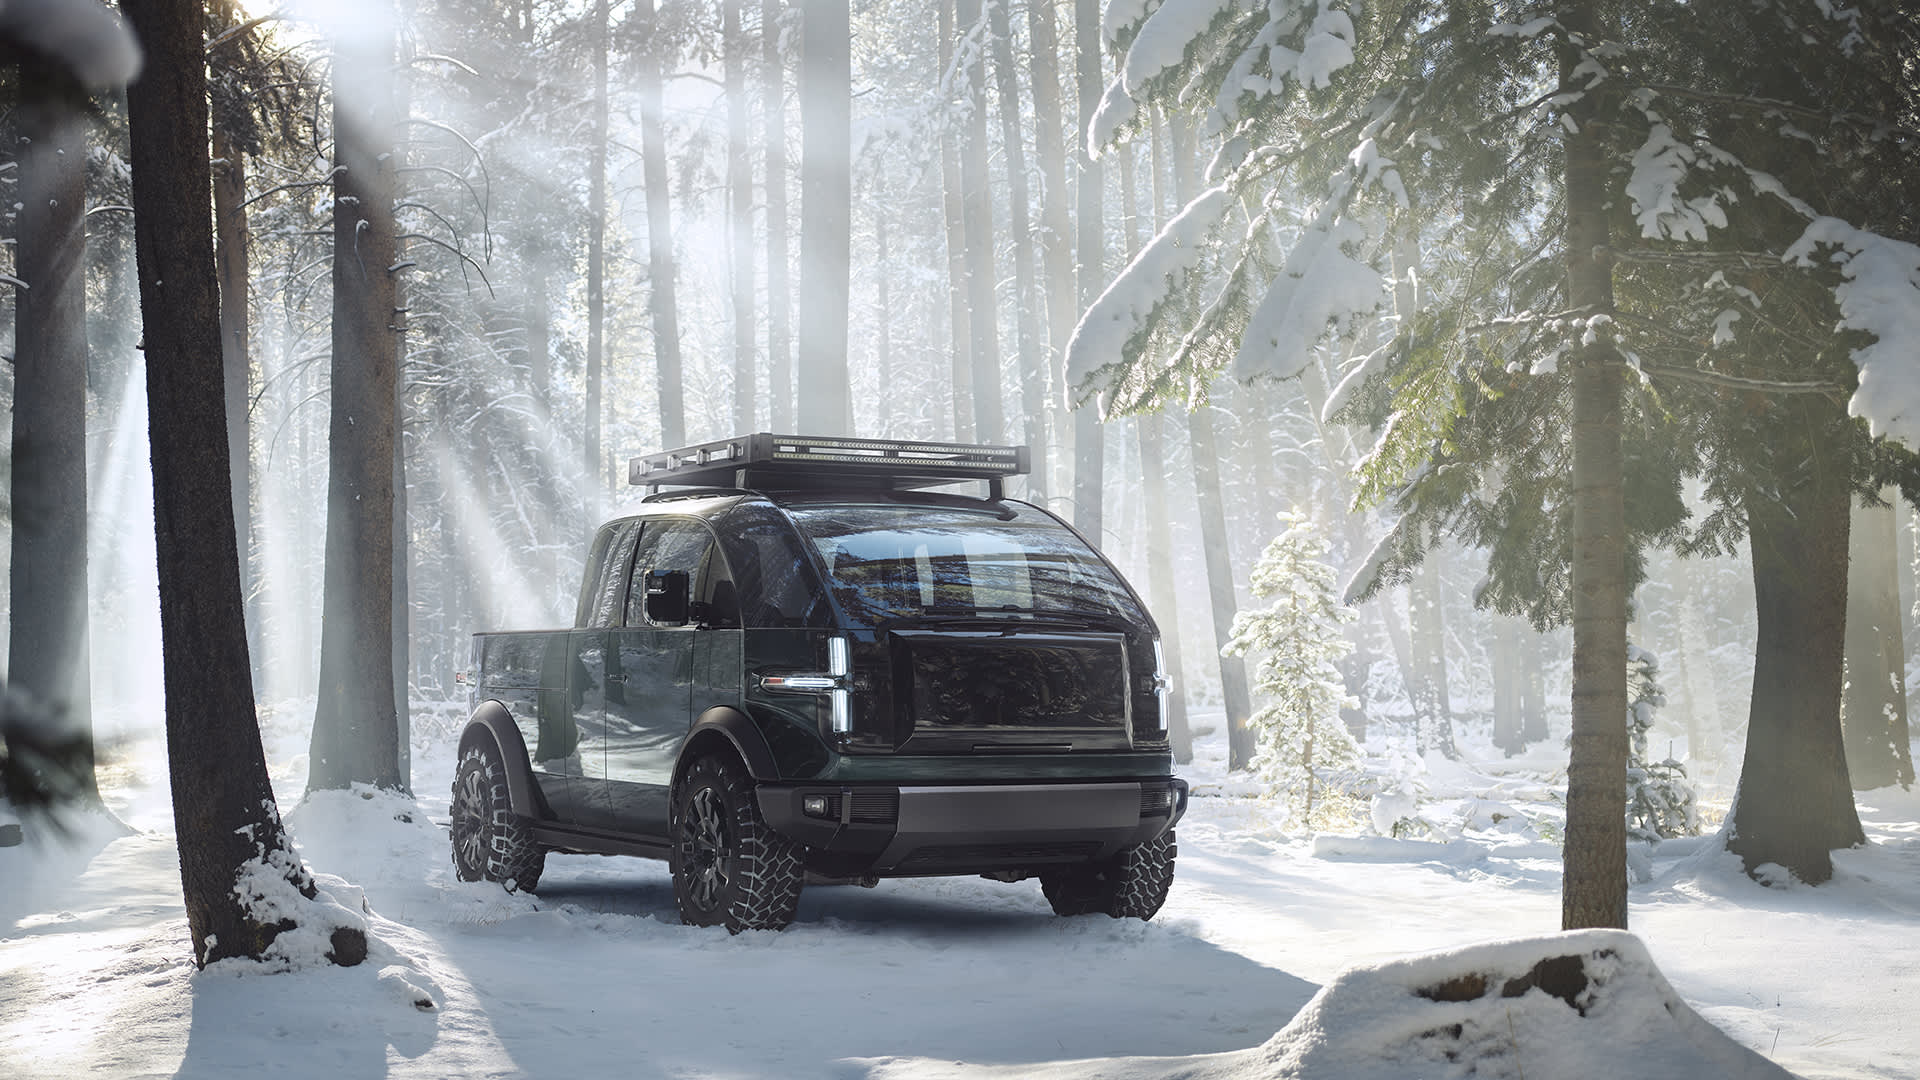 EV start-up Canoo unveiled its electric pickup on March 11, 2021.